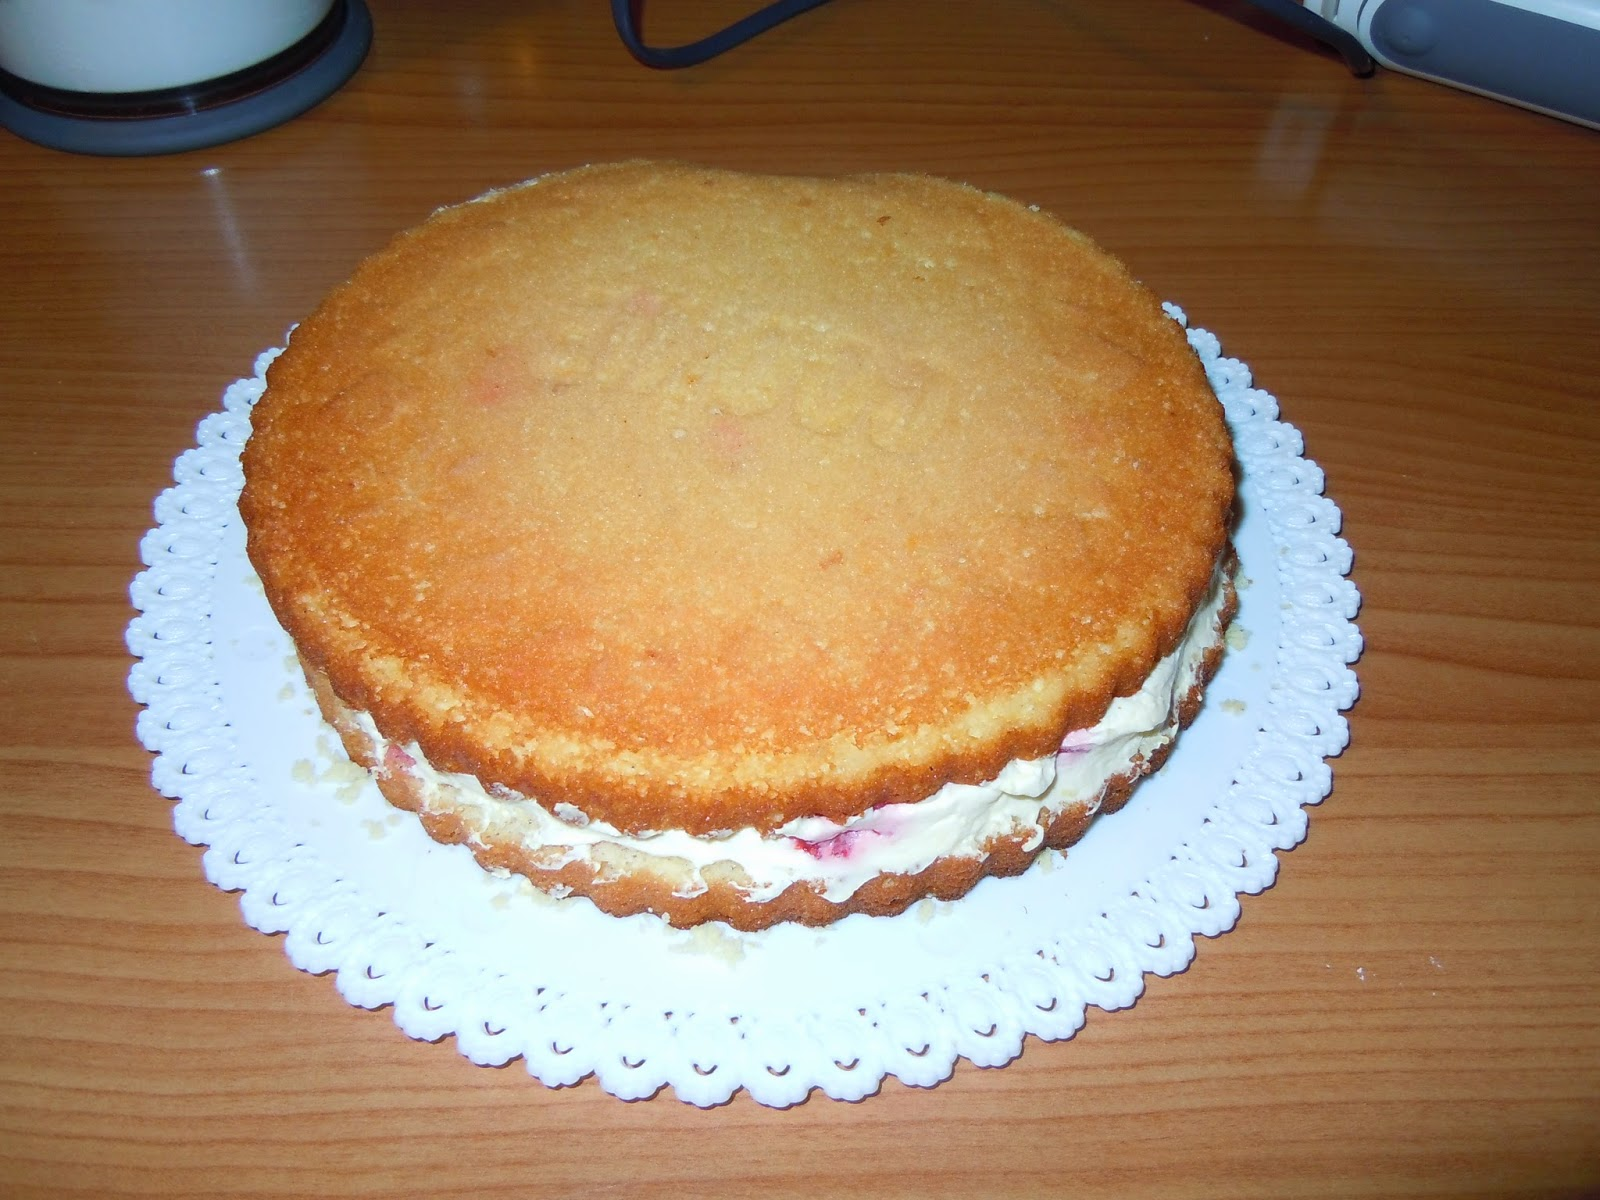 Bagna Per Torta Alle Fragole Soul Food To Go Torta Facile Alle Fragole